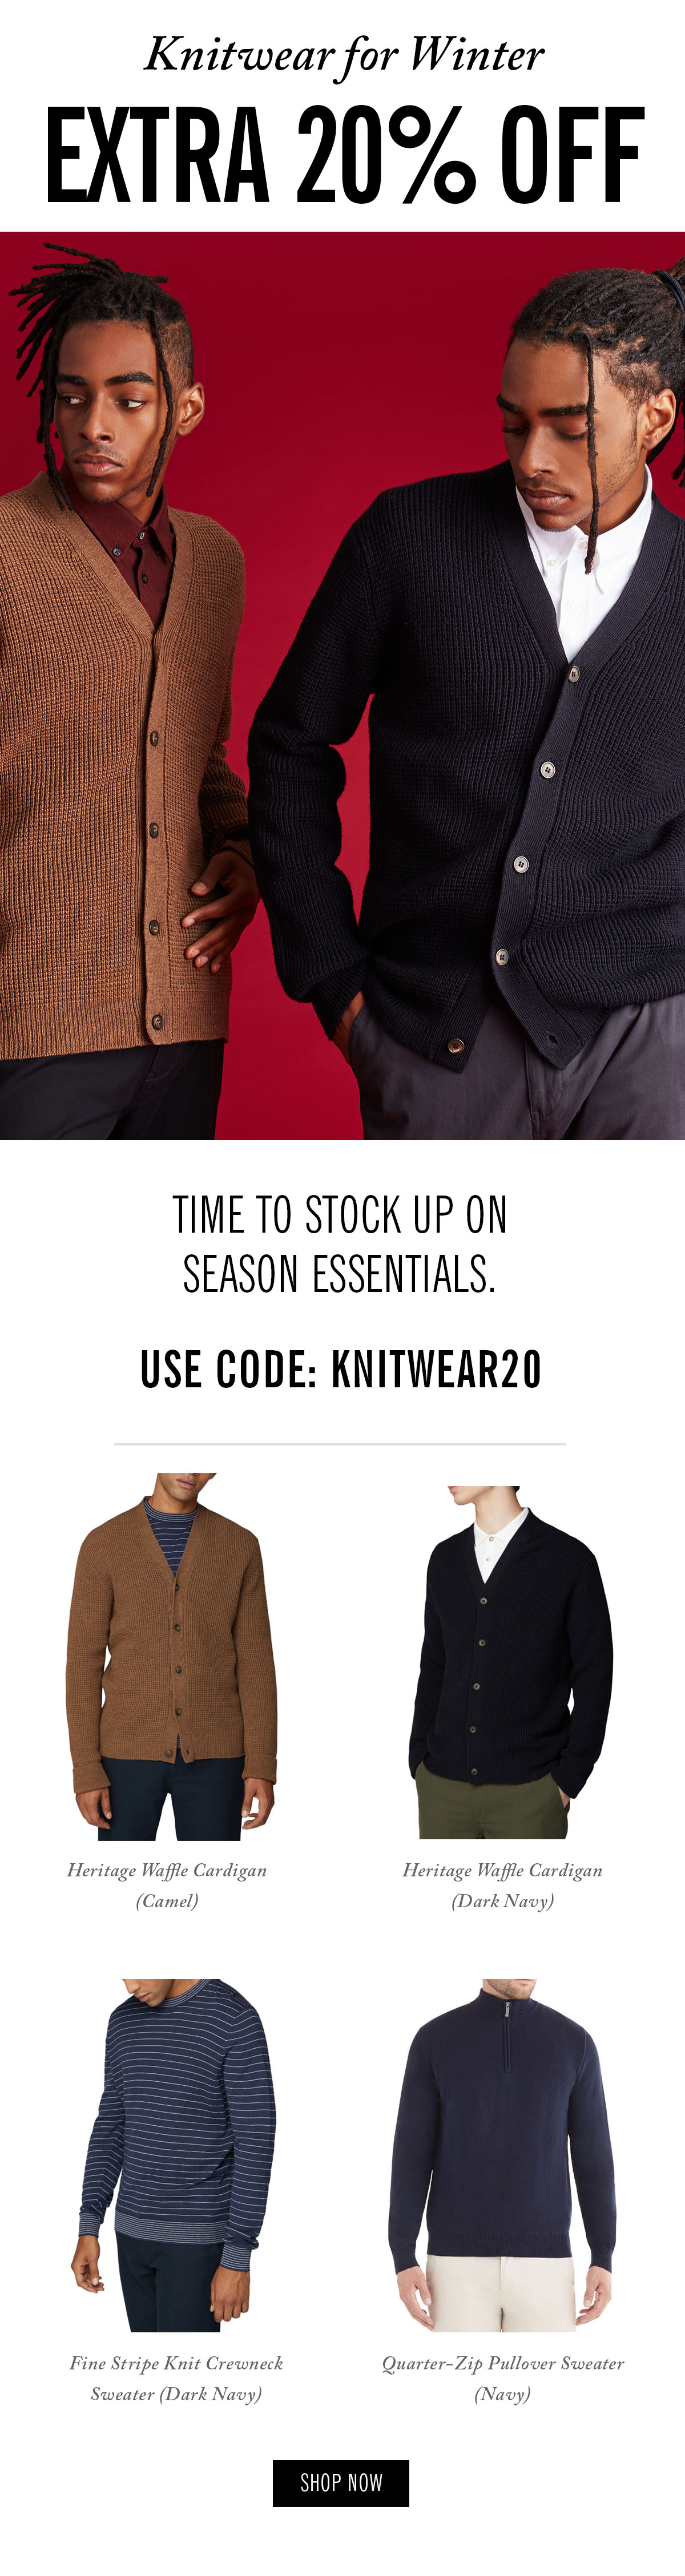 Knitwear for Winter | Extra 20% Off | Time to stock up on season essentials. | Use code: KNITWEAR20